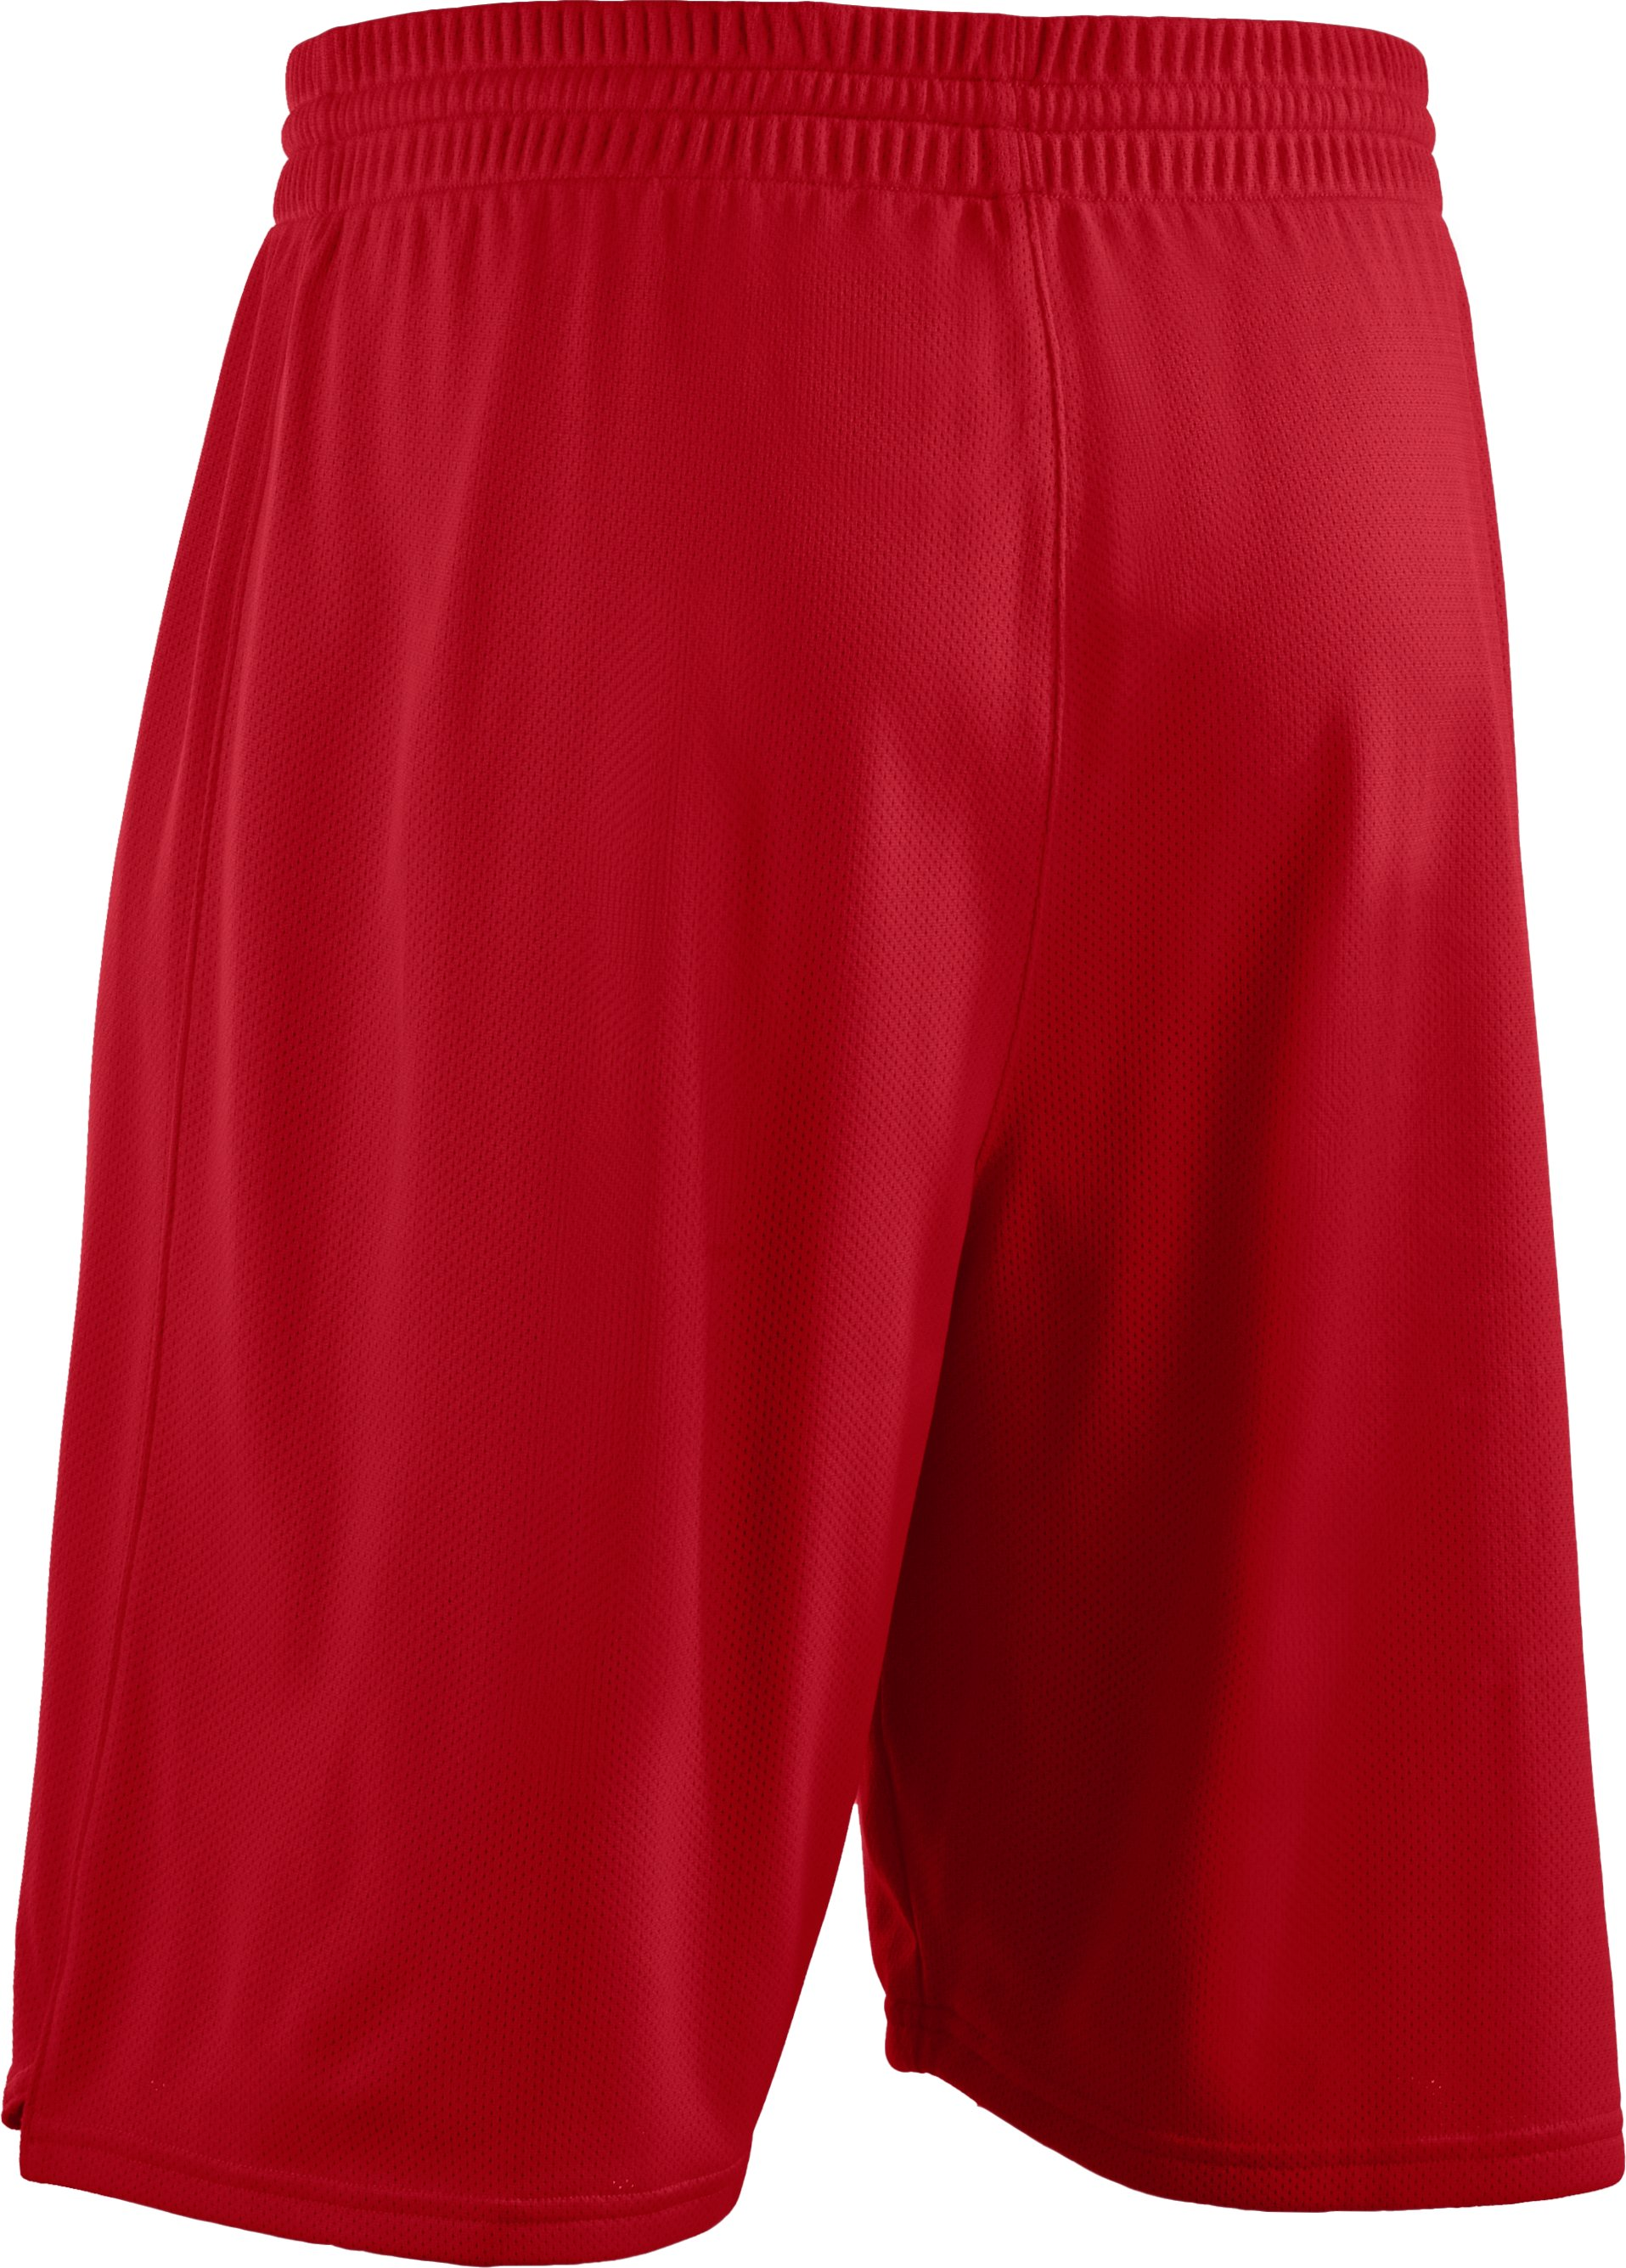 "Men's Dominate 10"" Basketball Shorts, Red"